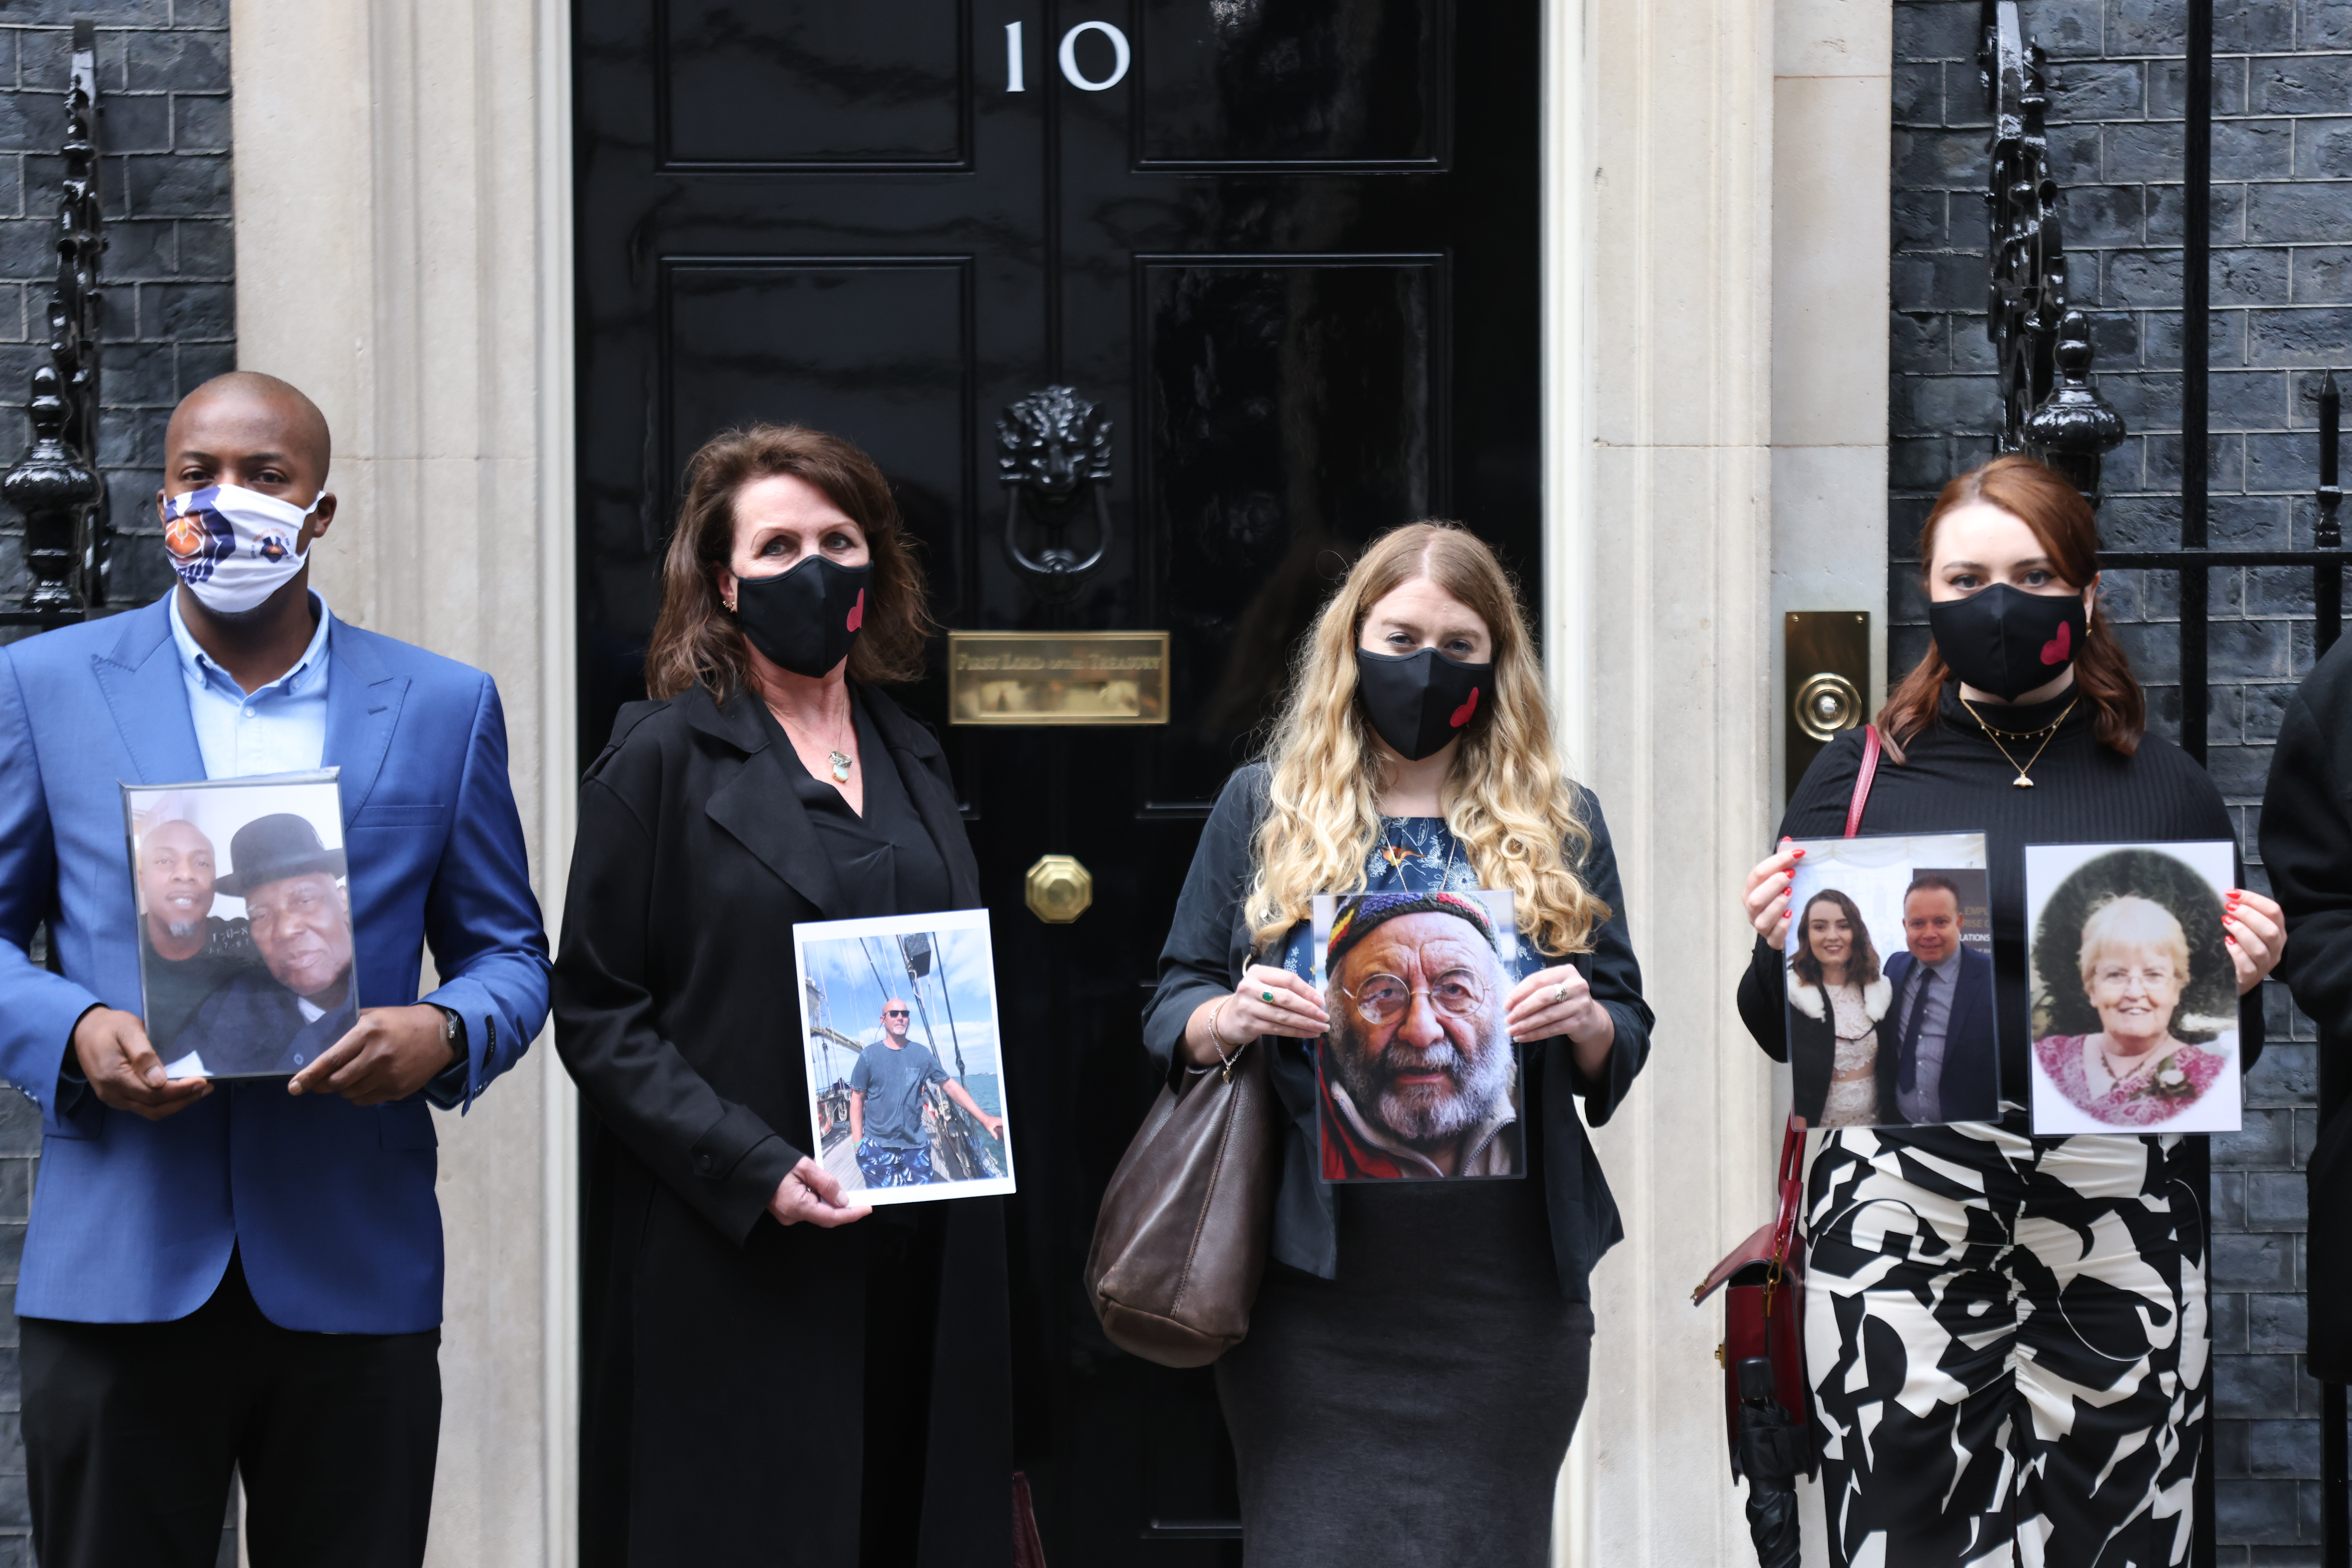 <p>Members of the Covid-19 Bereaved Families for Justice group holding photos of loved ones outside 10 Downing Street, London, after their private meeting with Prime Minister Boris Johnson, 398 days after he first promised to do so. Picture date: Tuesday September 28, 2021.</p>